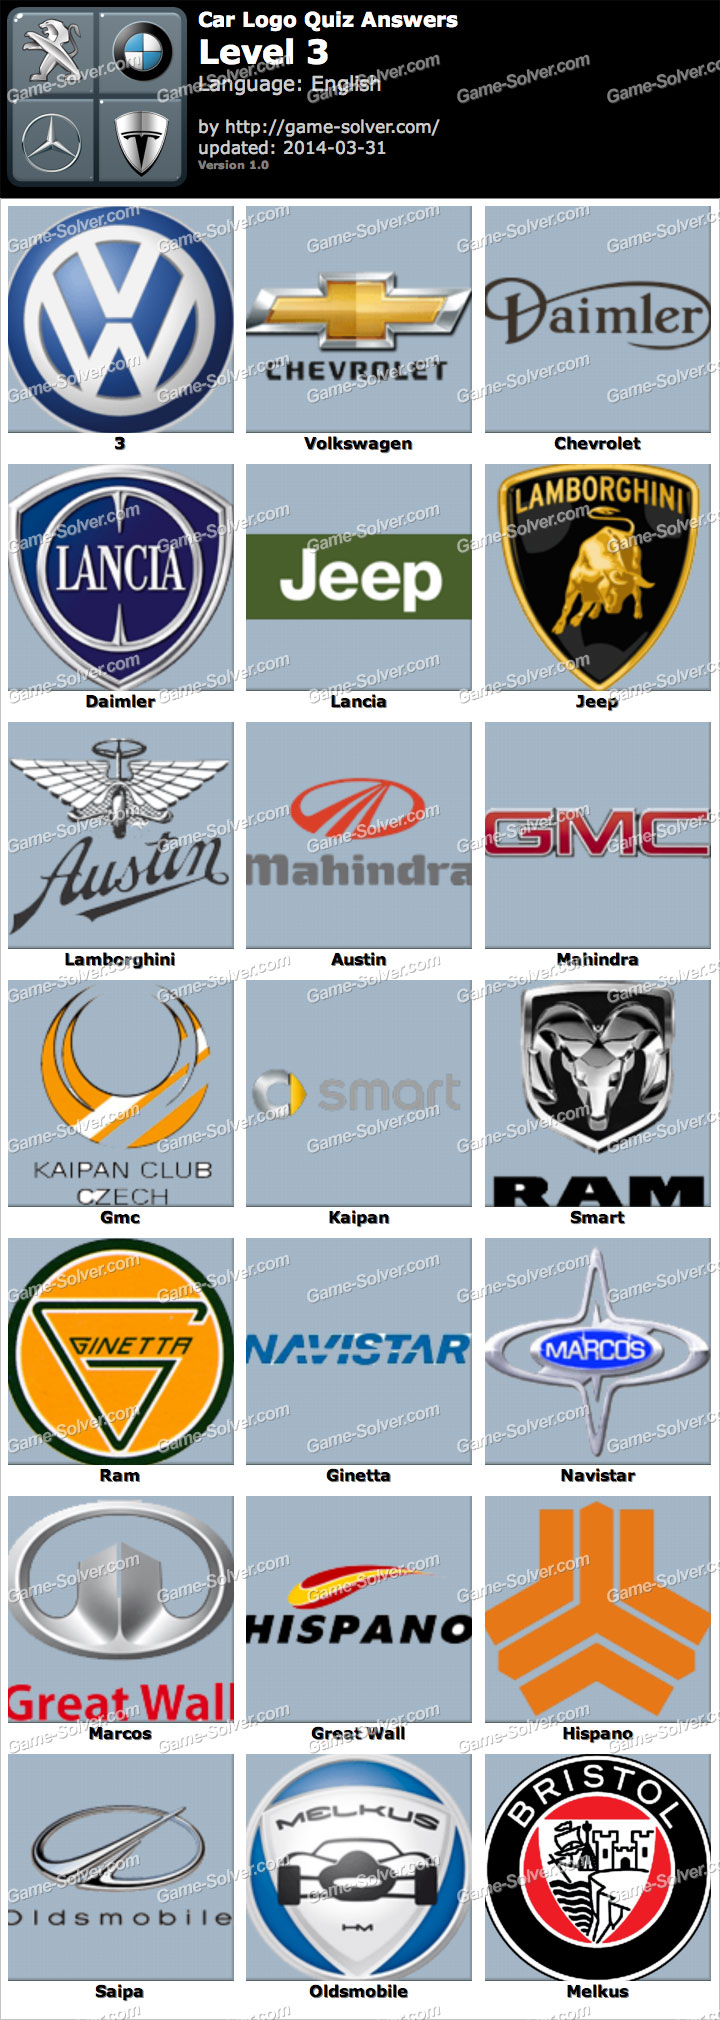 Car Logo Quiz Level 3 - Game Solver Cars Logos Quiz Answers